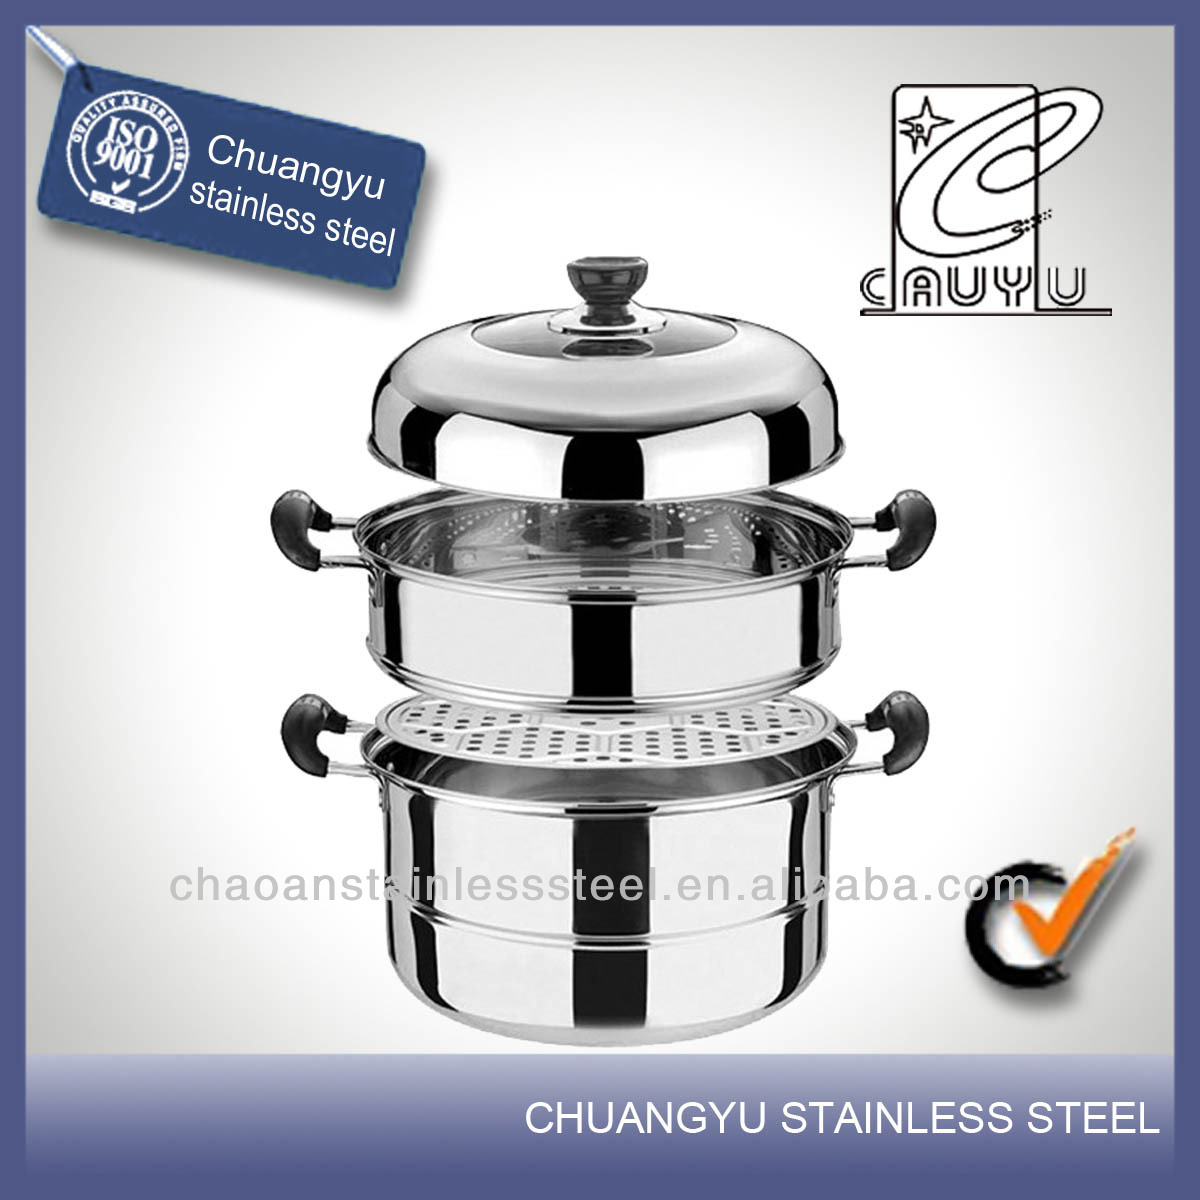 Stainless steel high quality optima steamer on sale